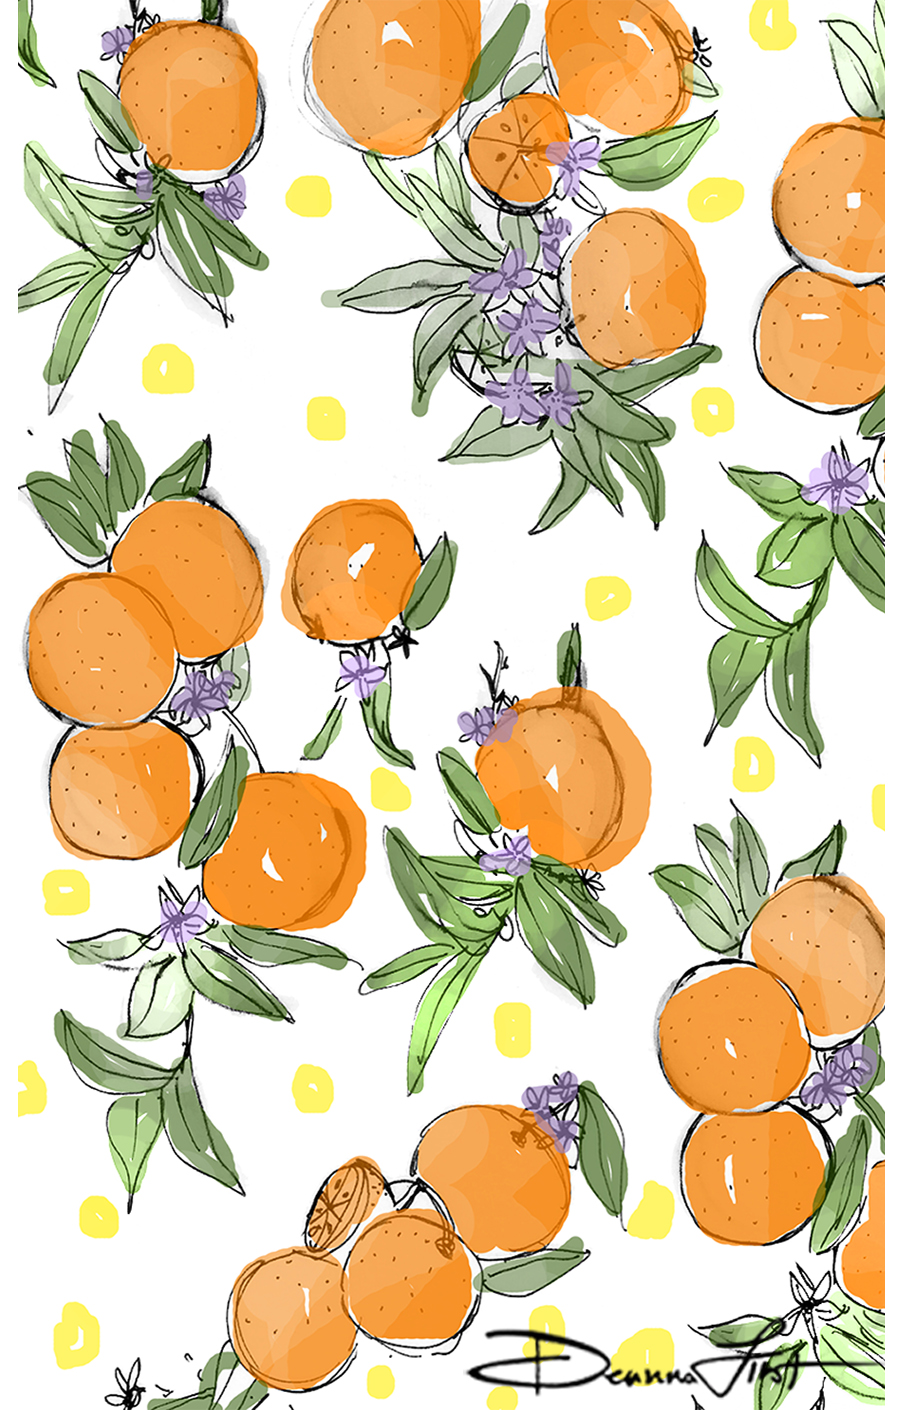 oranges_dots_deannafirst_small copy.jpg